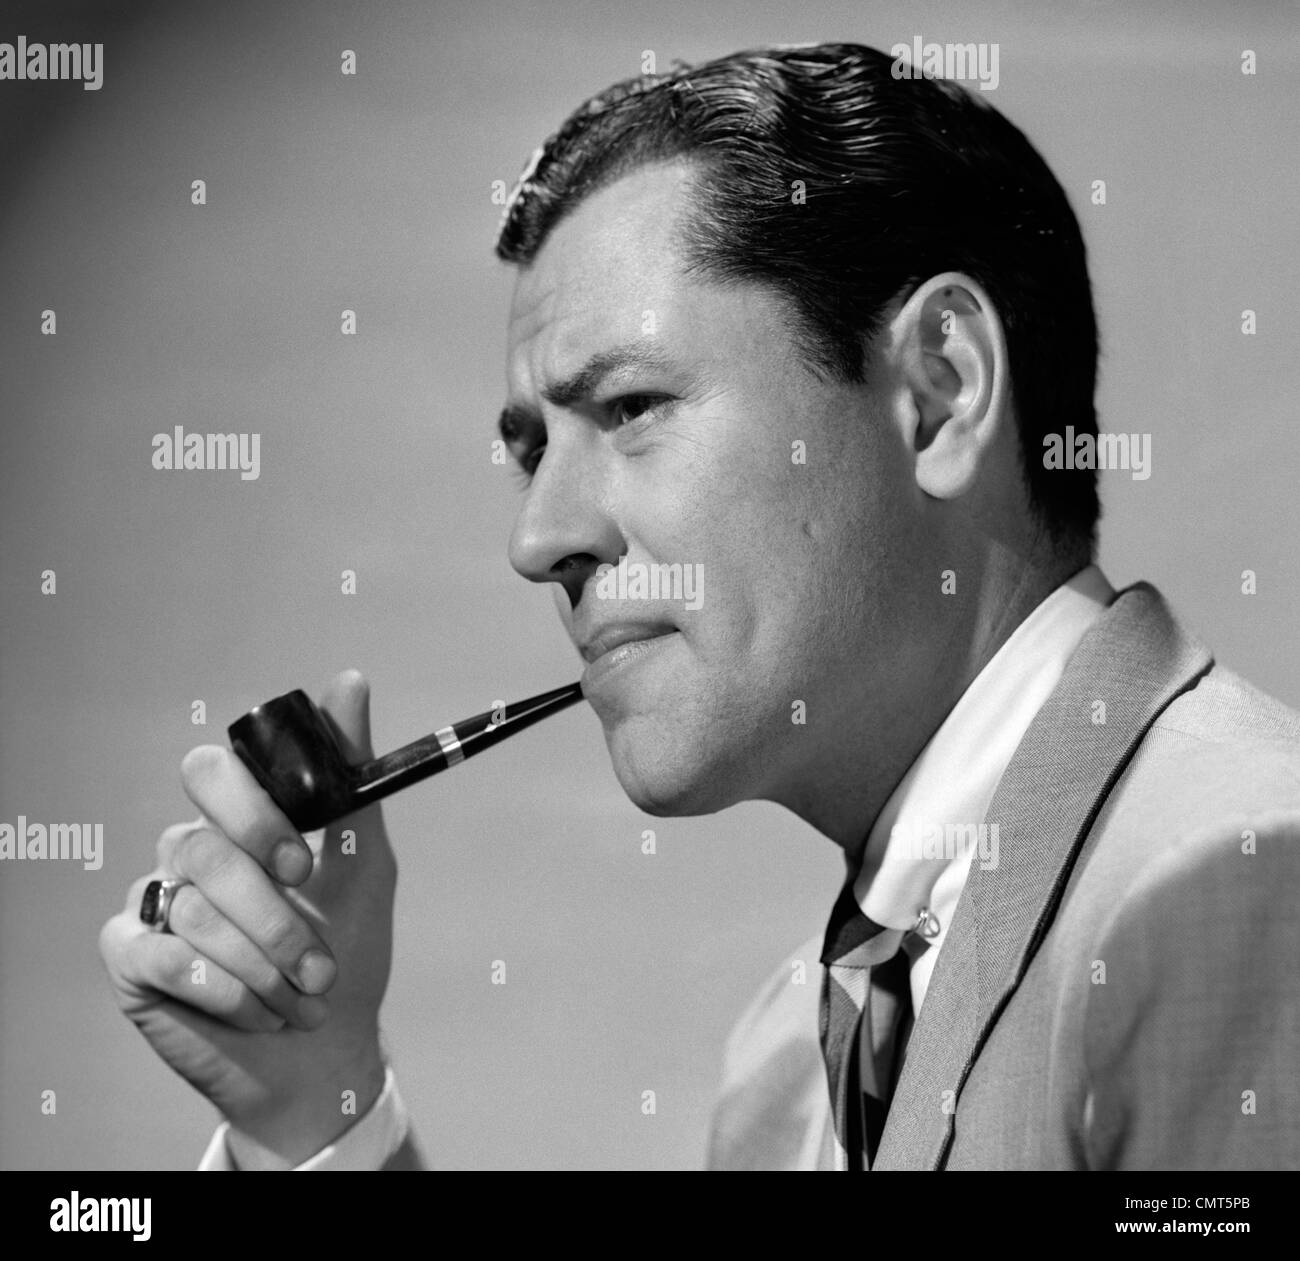 1950s FROWNING BUSINESSMAN IN JACKET AND TIE SMOKING A PIPE - Stock Image